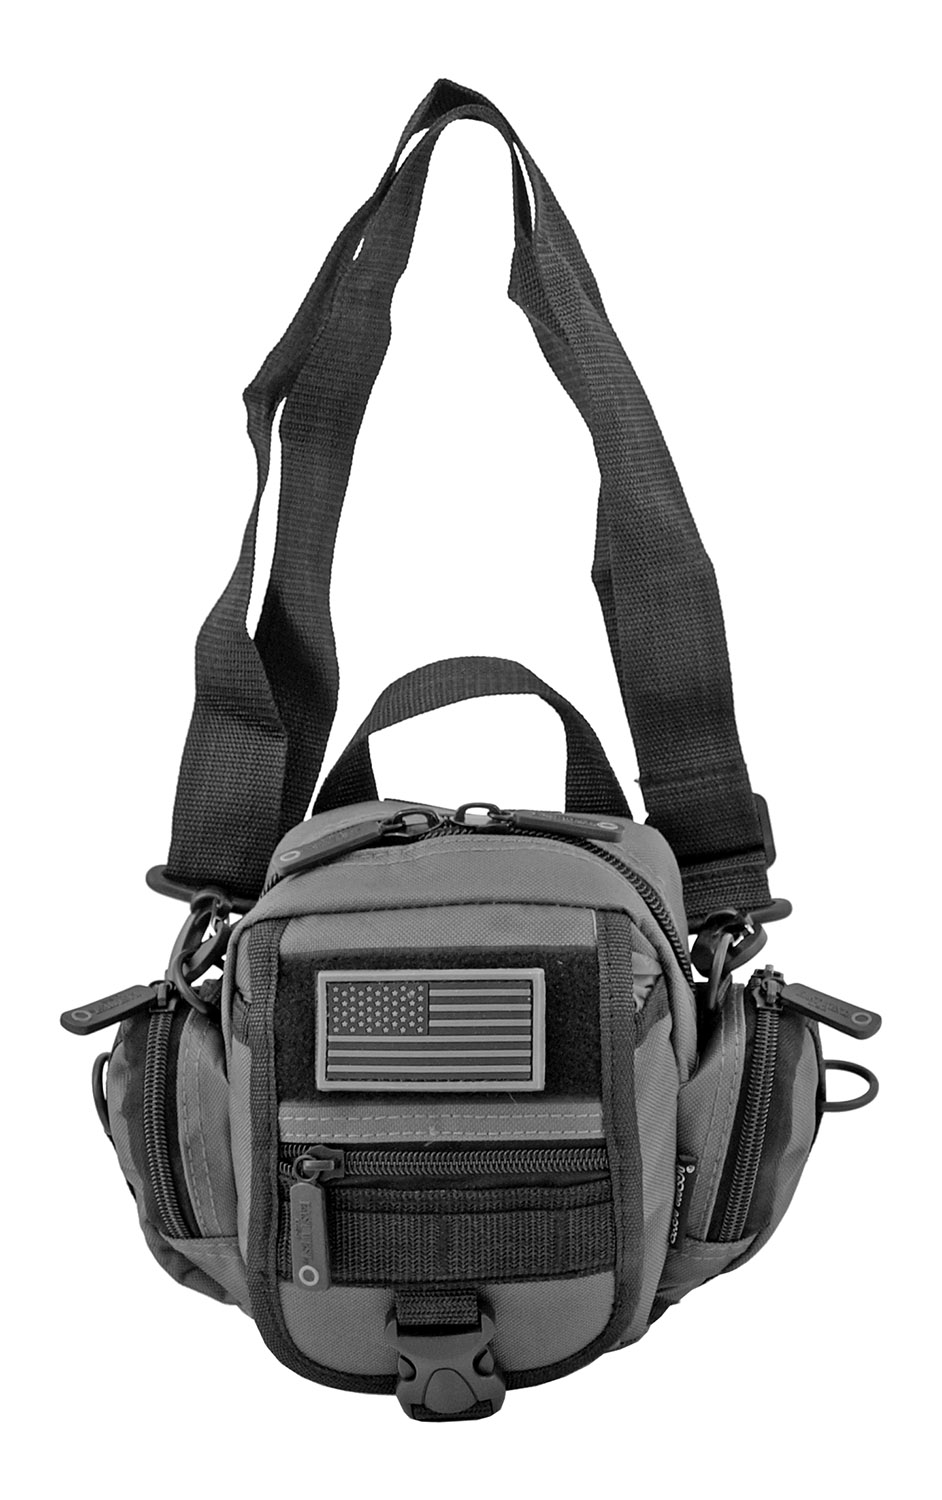 Multi-Functional Tactical Utility Backpack Fanny Pack - Grey